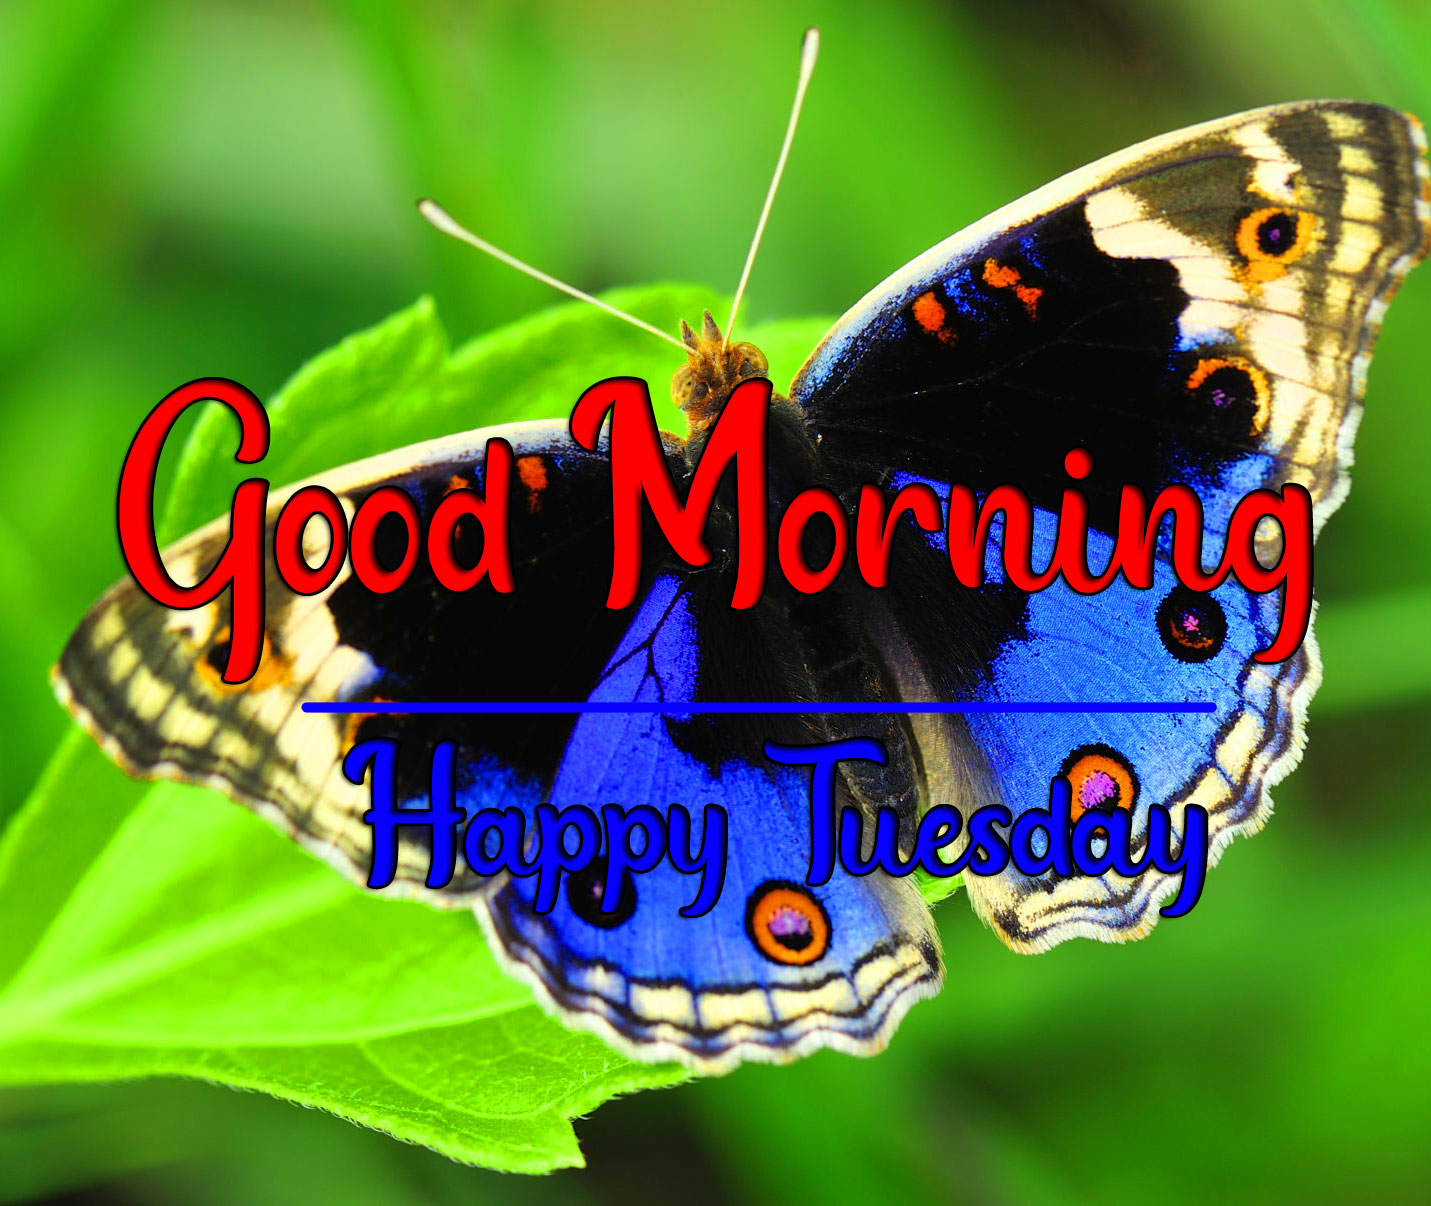 Tuesday Good morning Pictures With Butterfly